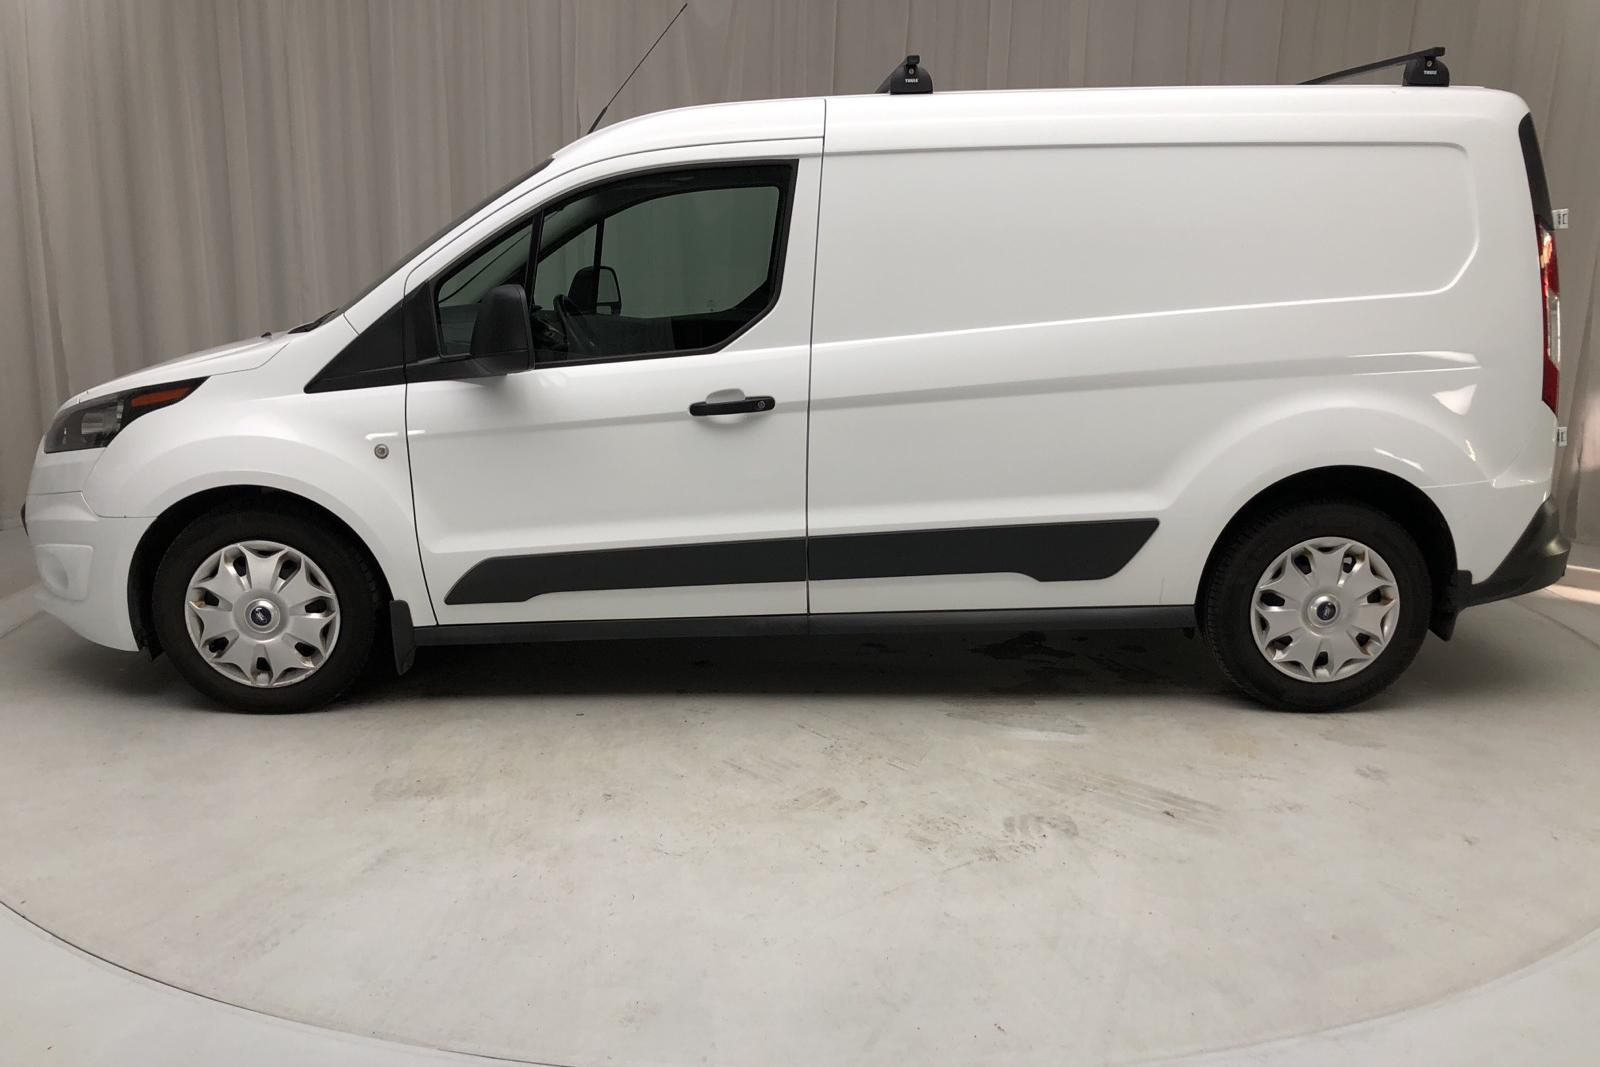 Ford Transit Connect 1.5 TDCi (120hk) - 53 436 km - Automatic - white - 2016